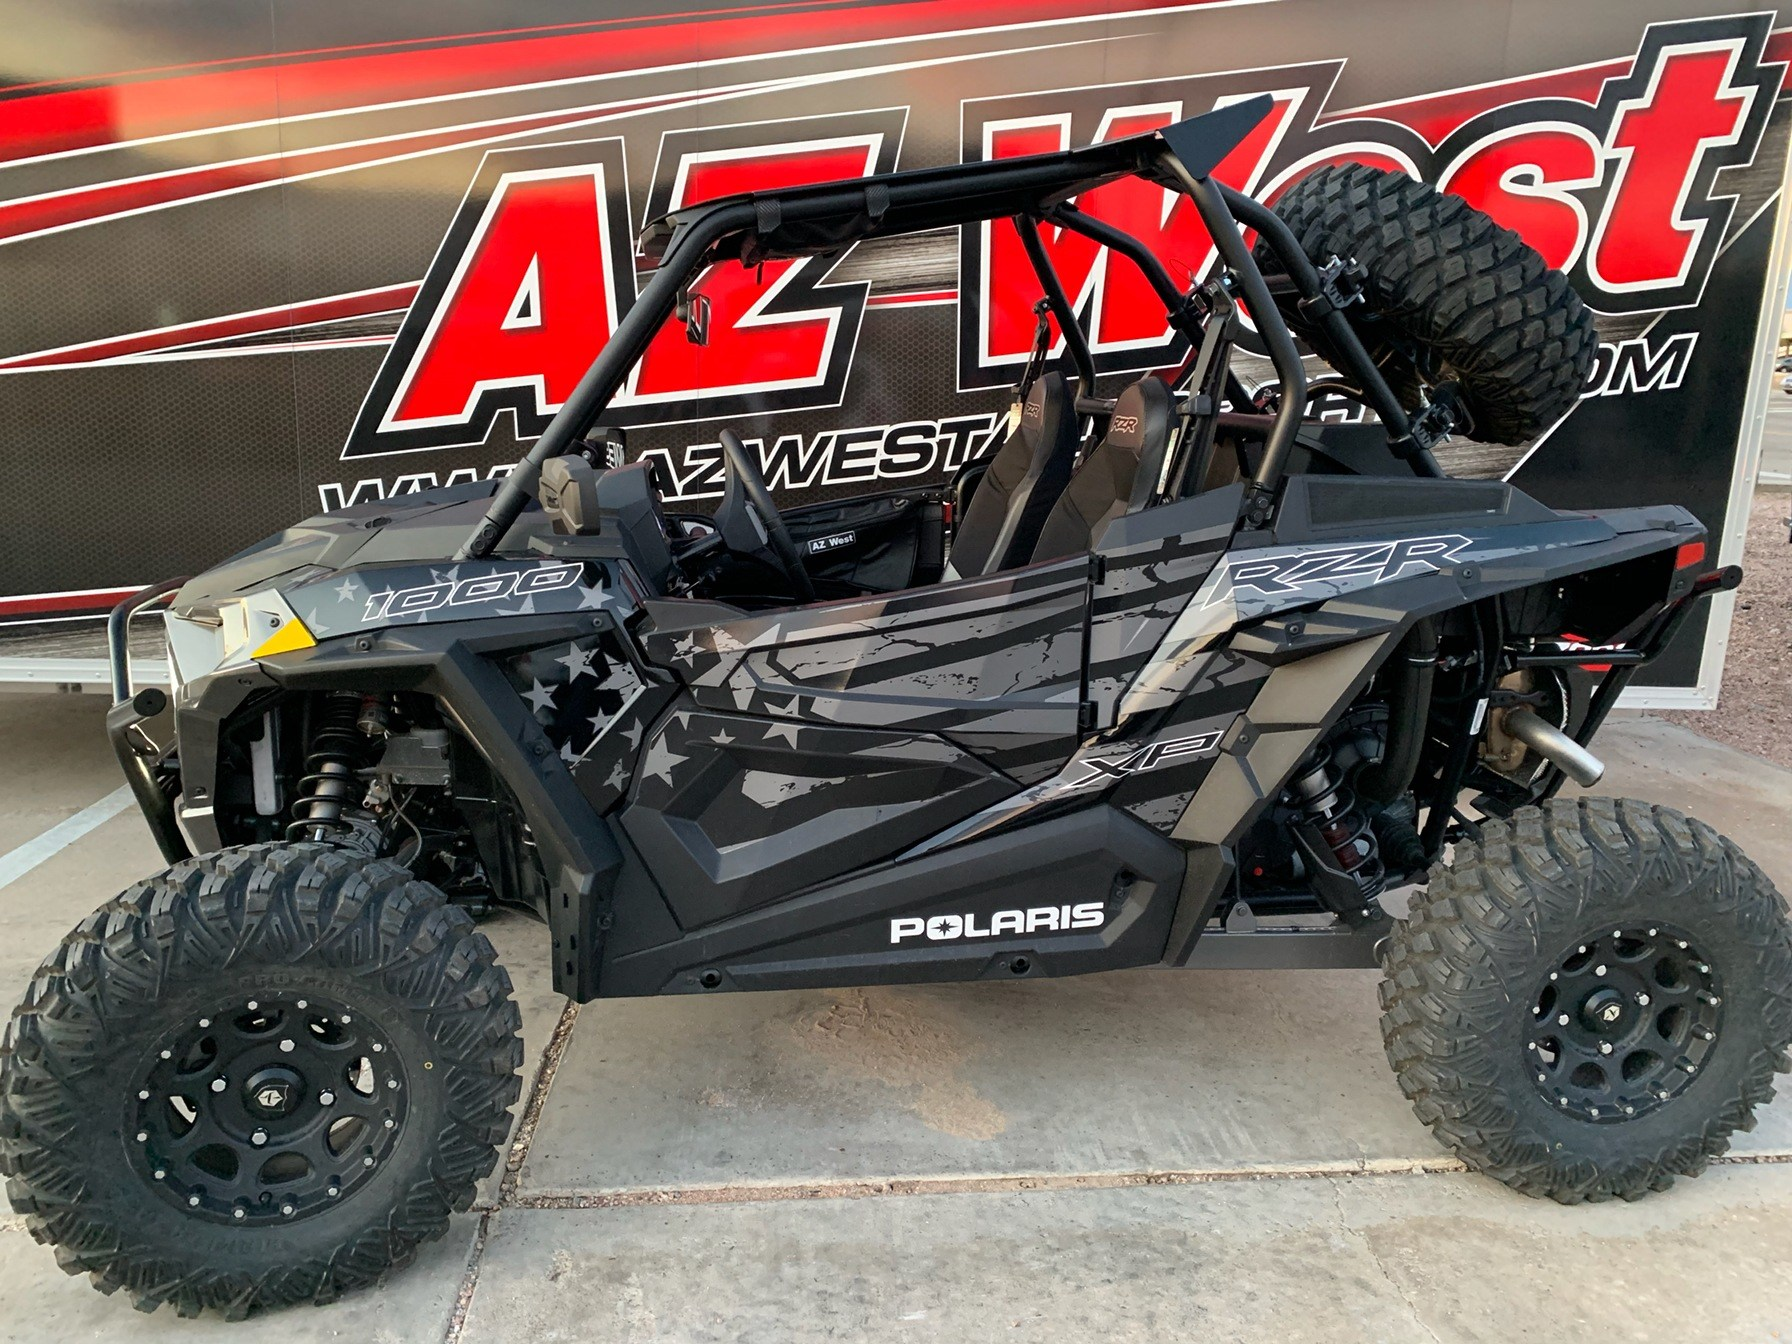 2020 Polaris RZR XP 1000 LE in Lake Havasu City, Arizona - Photo 1